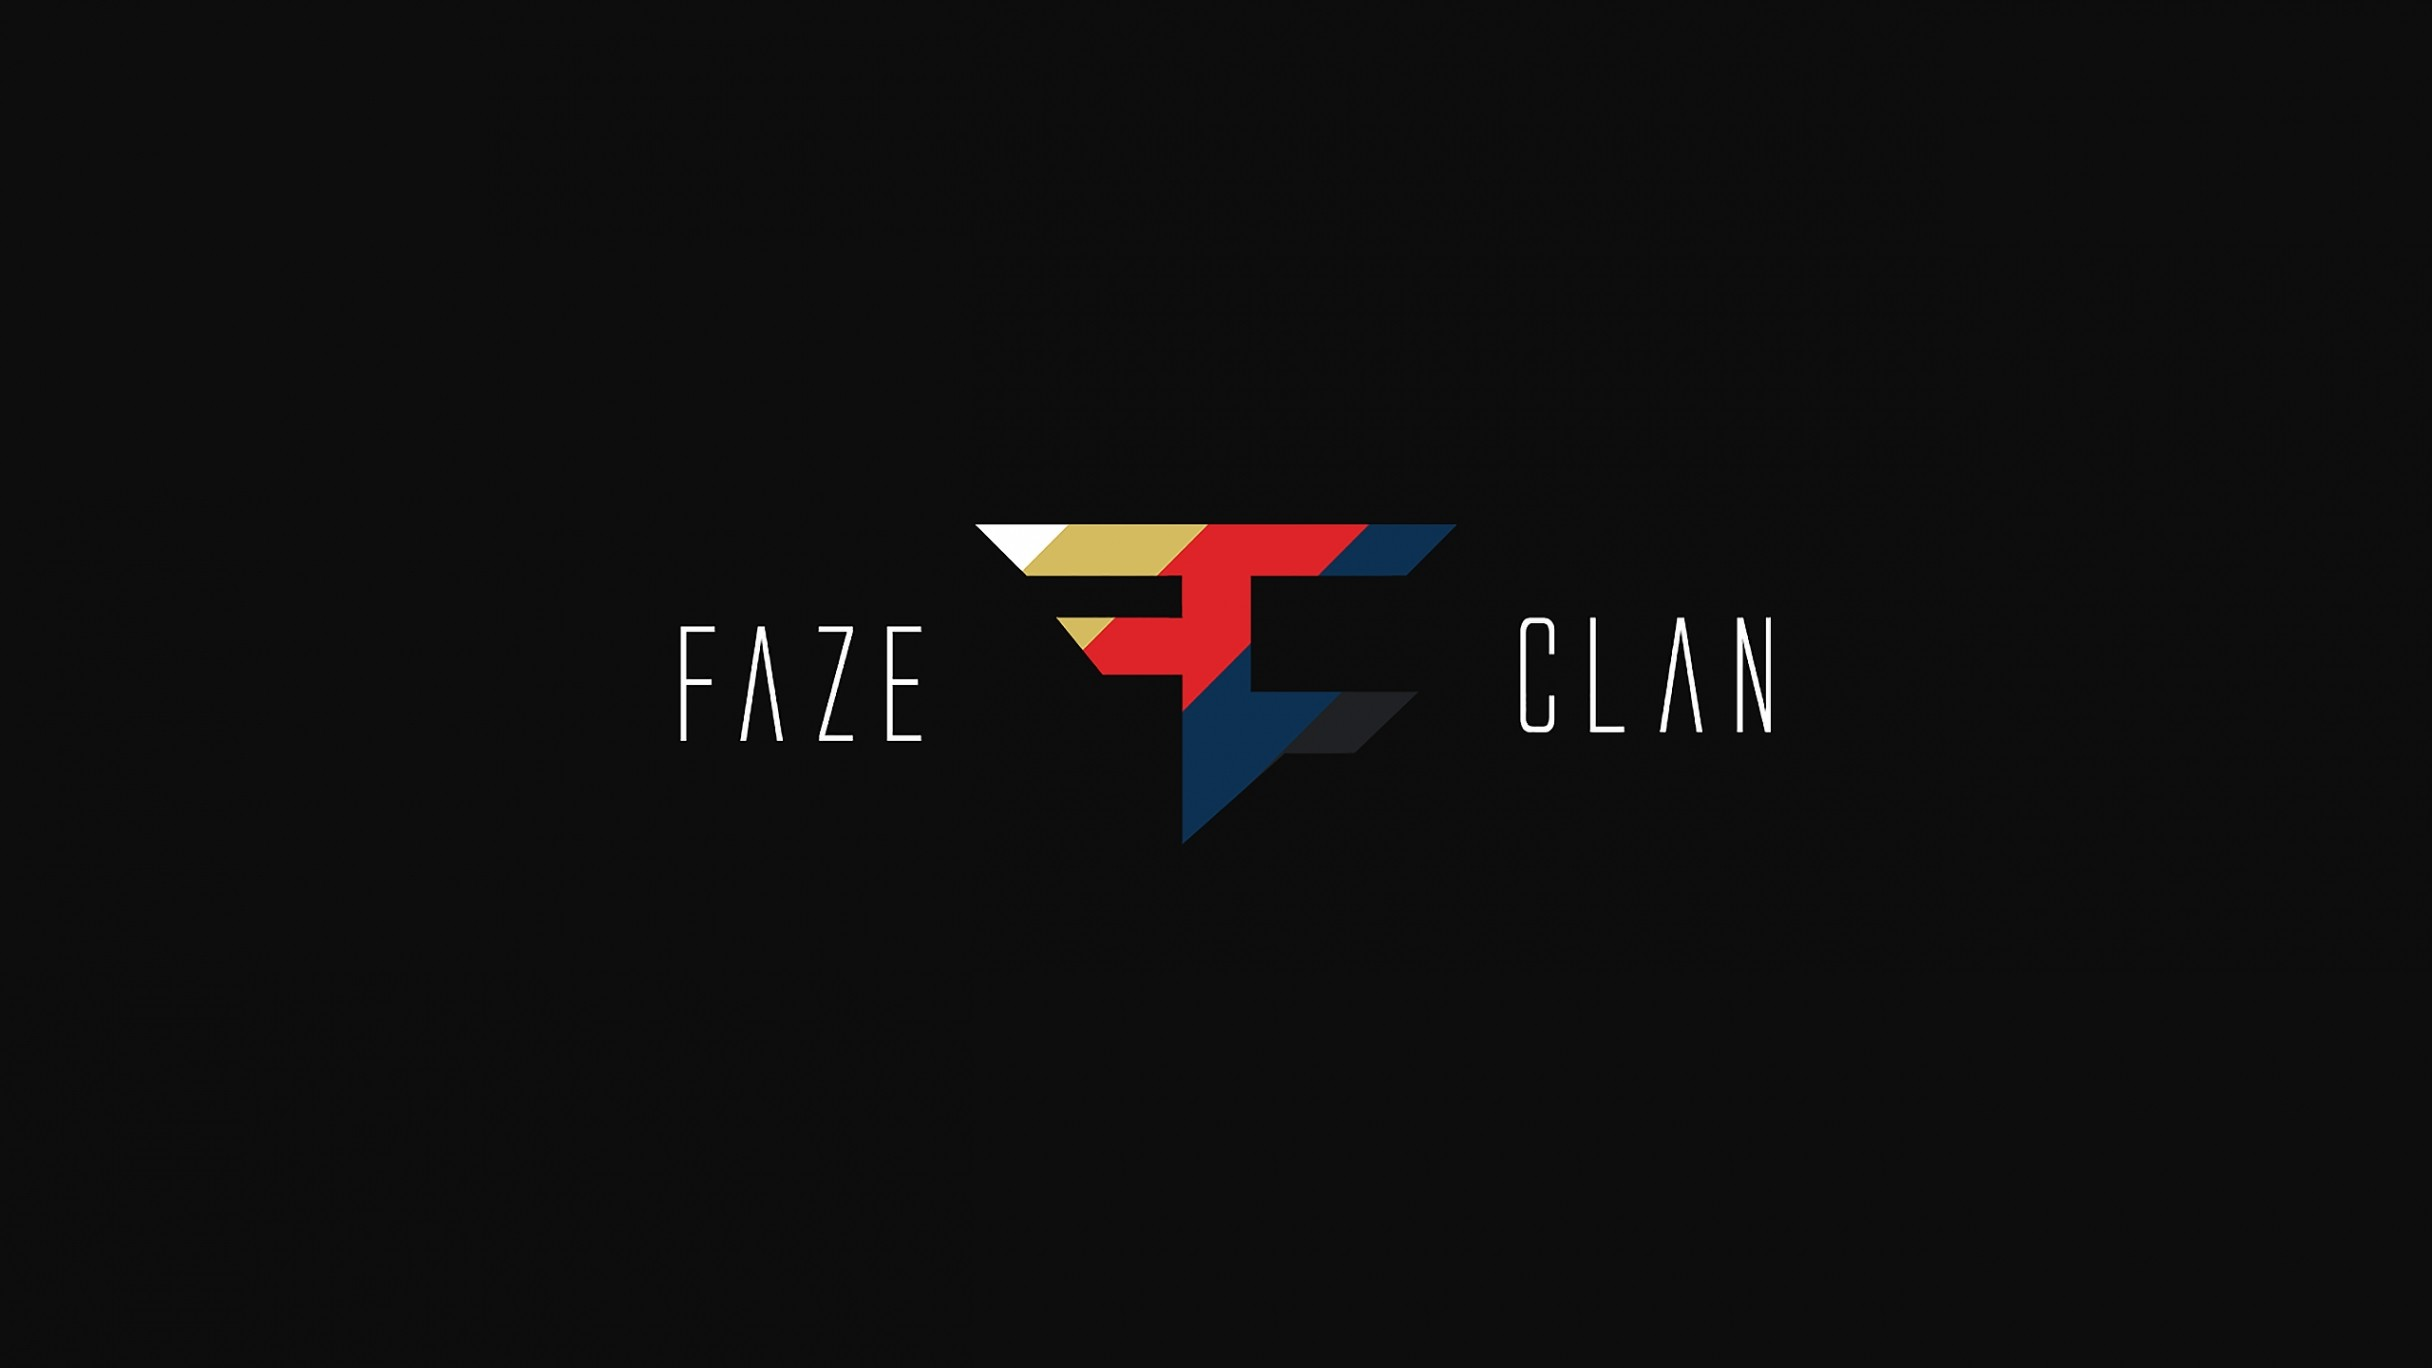 Free Download Faze Clan Wallpaper Pack V4 86 Images 2432x1368